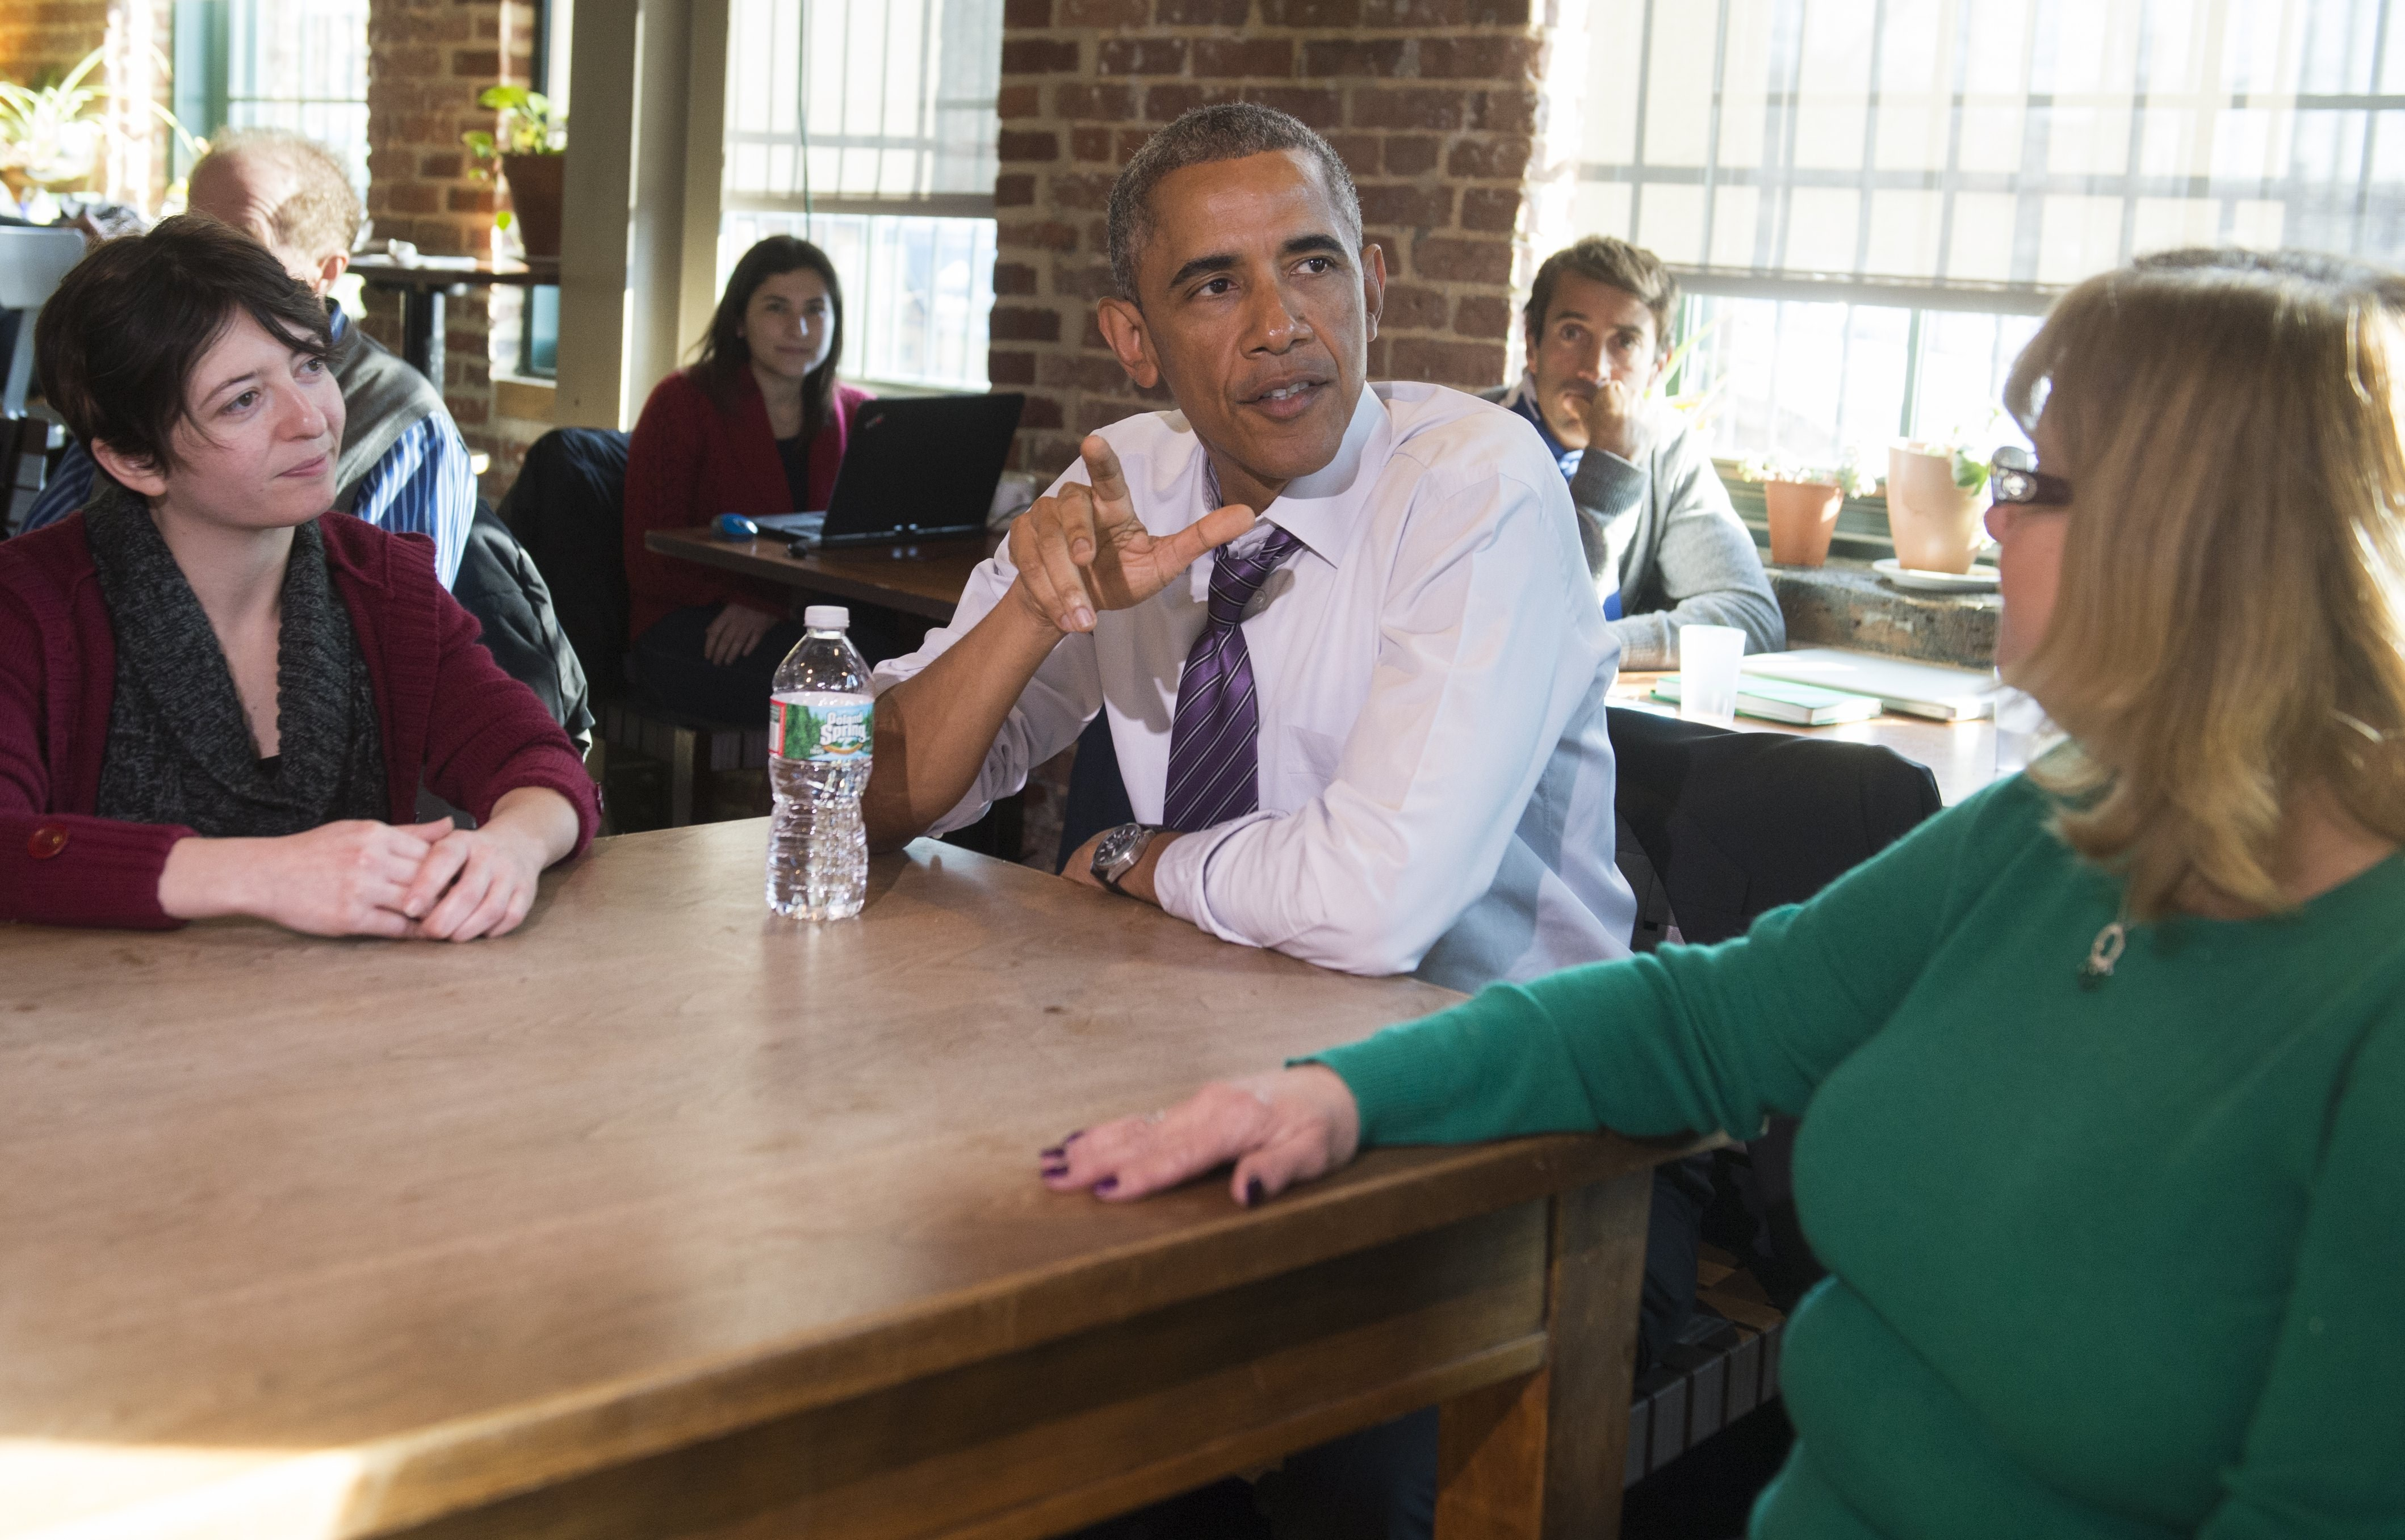 U.S. President Barack Obama speaks about increasing family leave for working Americans with Mary Stein, right, and Amanda Rothschild, left, after having lunch  in Baltimore